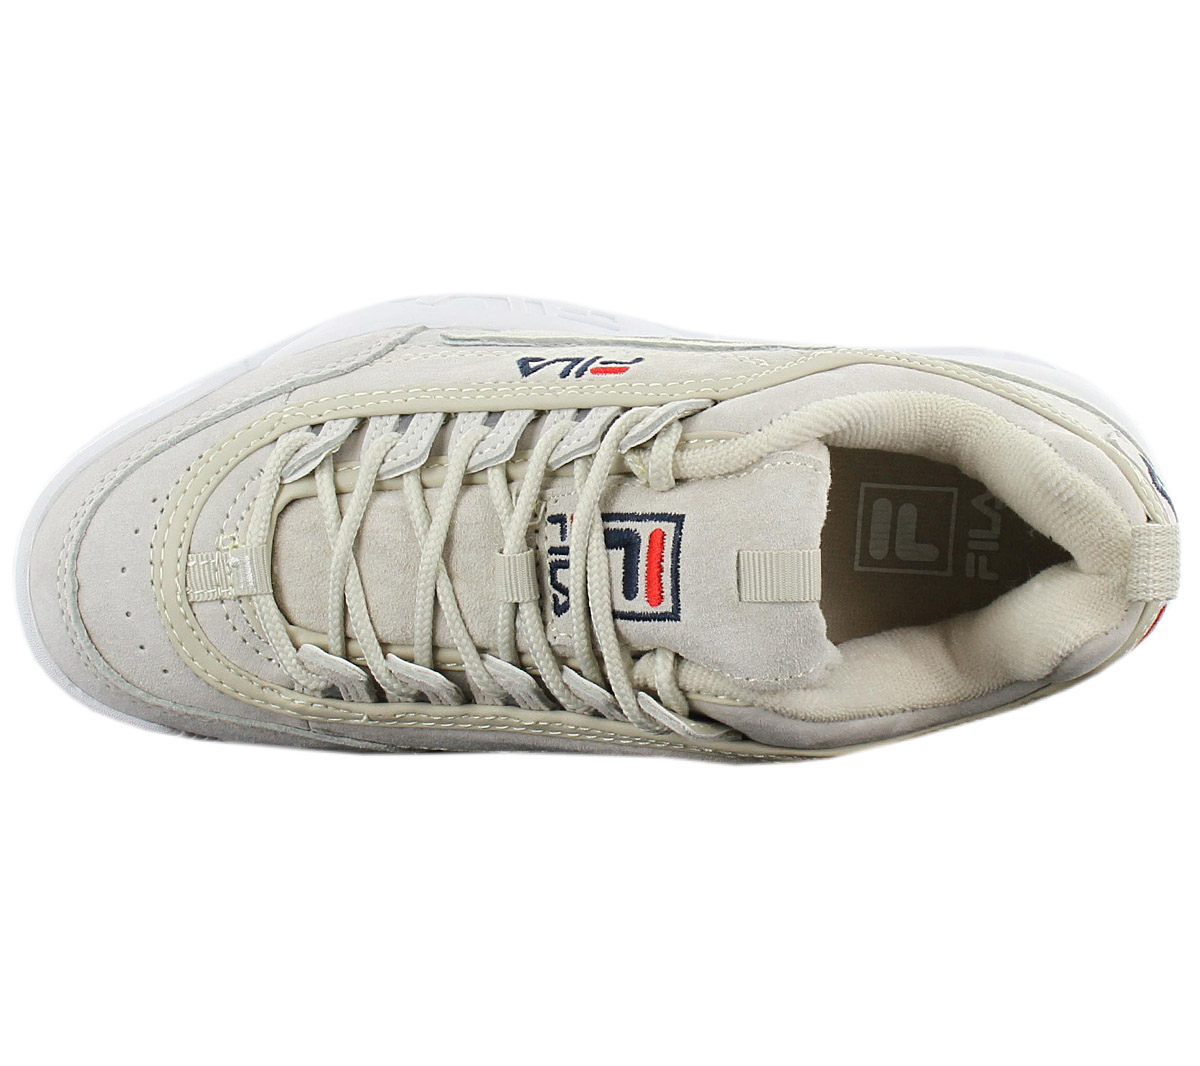 Details about Fila Disruptor LEATHER S Low Women's Sneaker Leather Grey Shoes 1010436.30H New